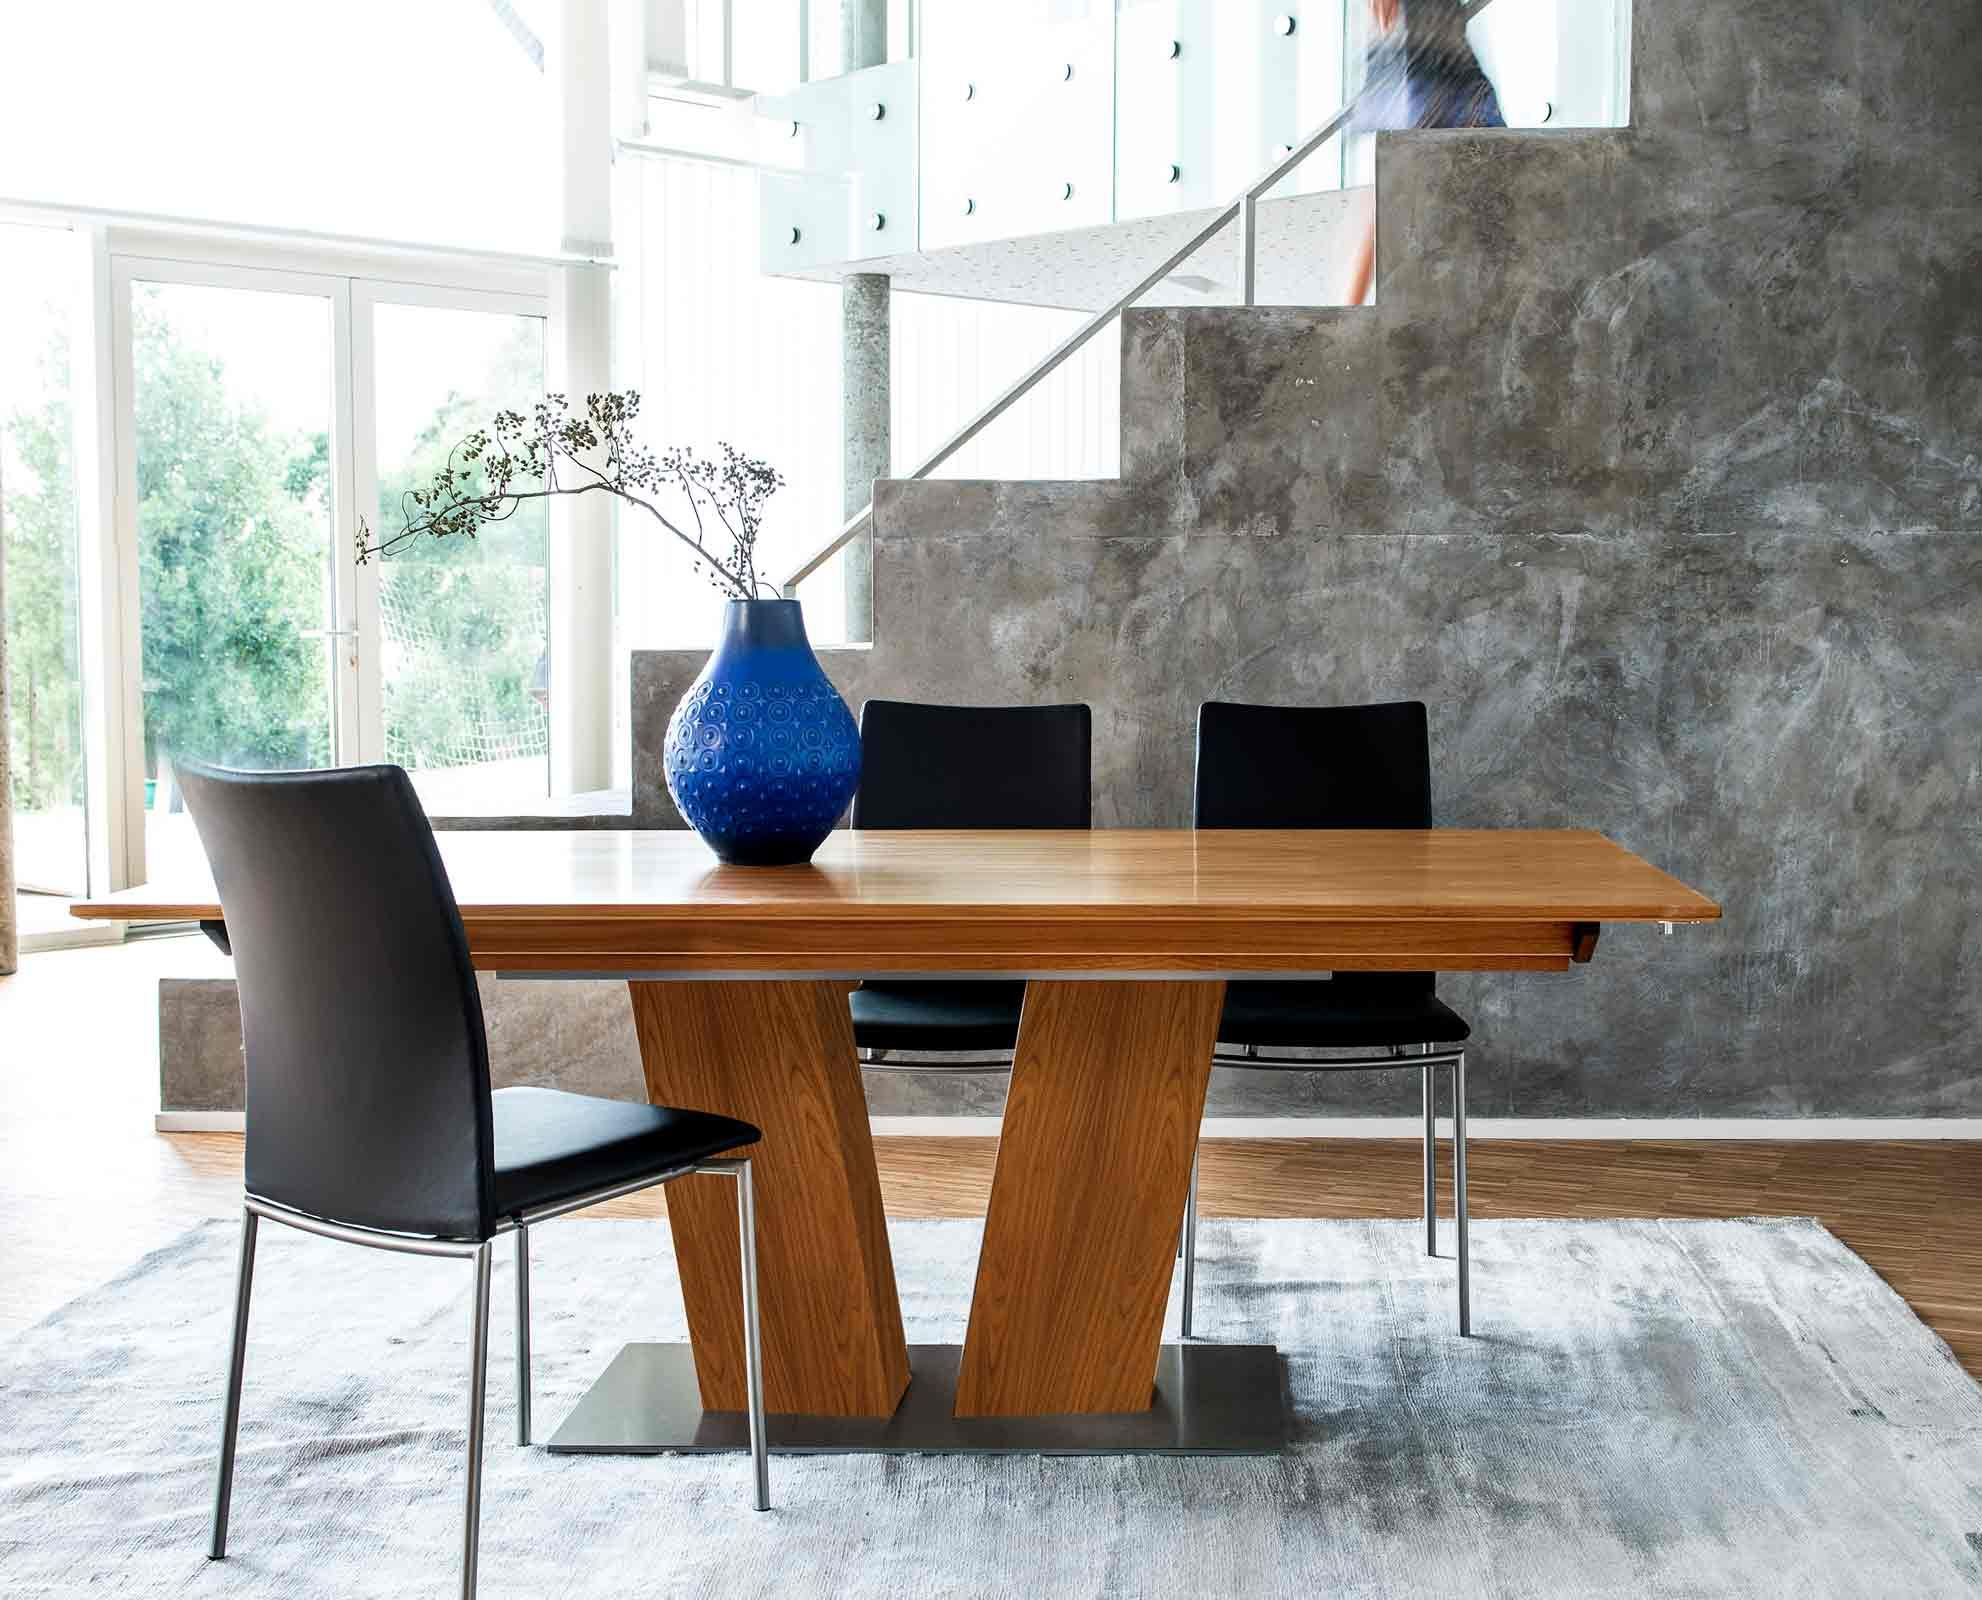 Dania   With A Dynamic Appearance, The Hadsten Dining Table Features A  Sculptural V